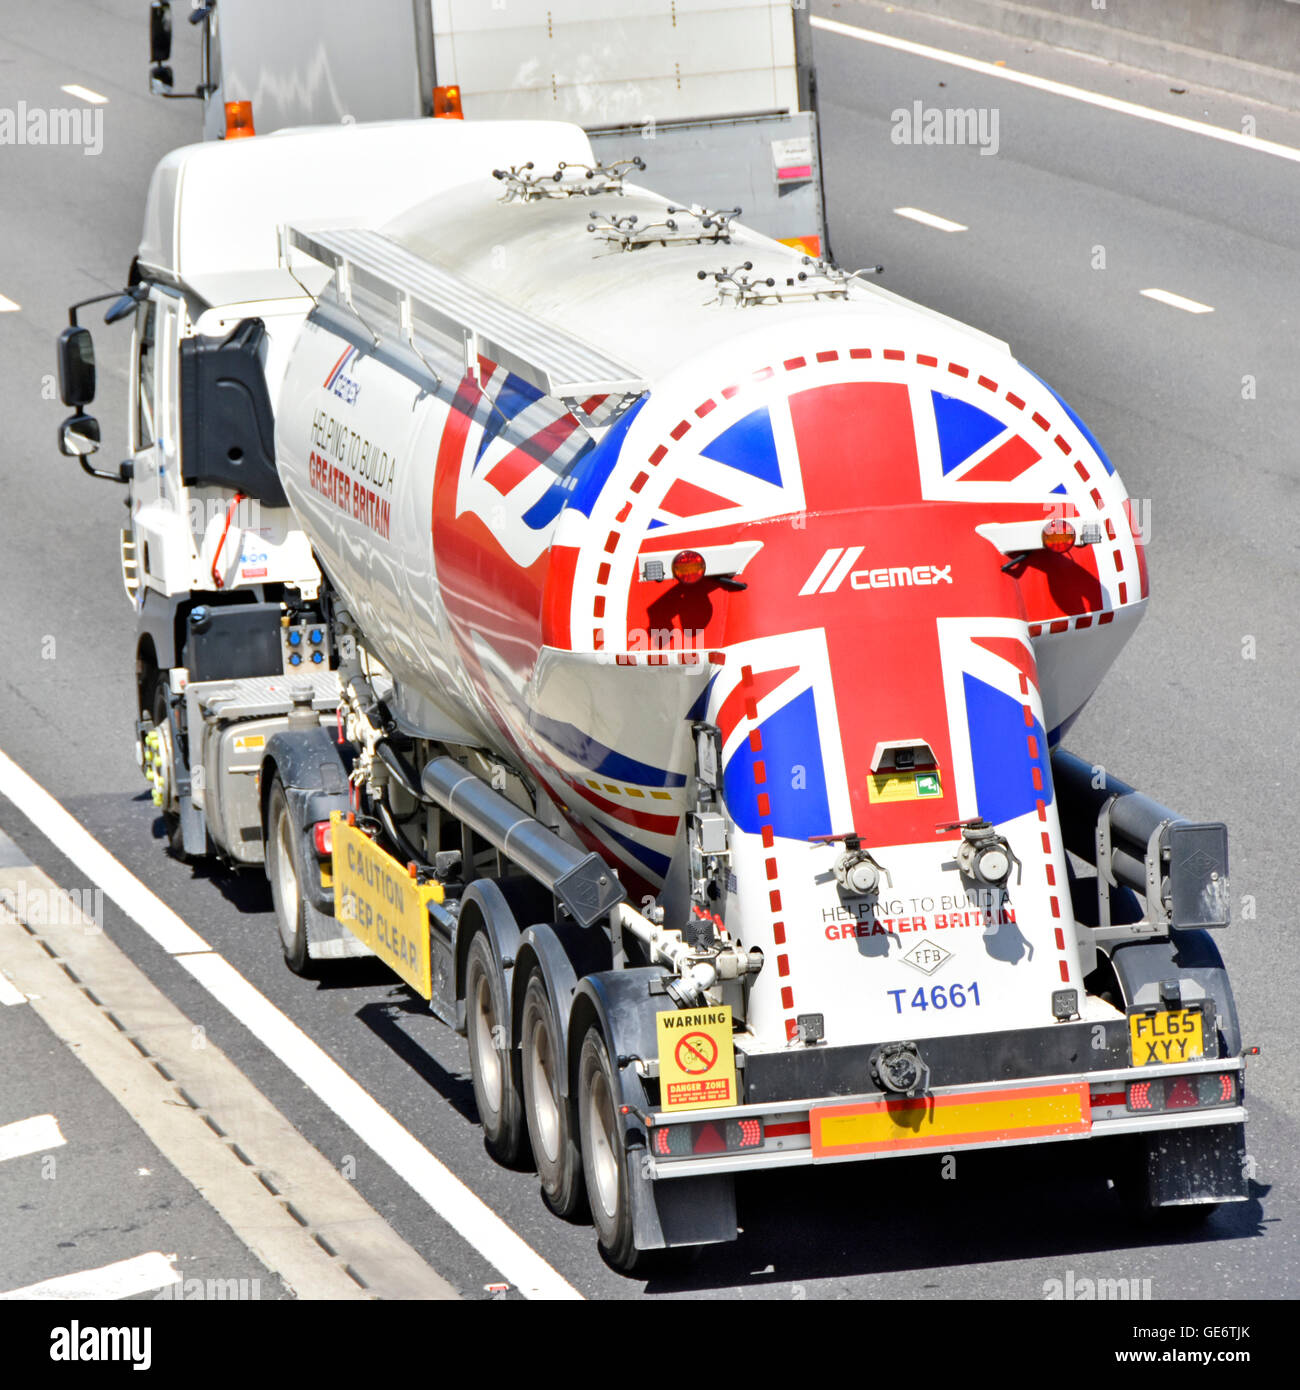 Cemex logistics bulk cement powder transport via articulated tanker lorry on UK motorway with Union Flag graphics - Stock Image